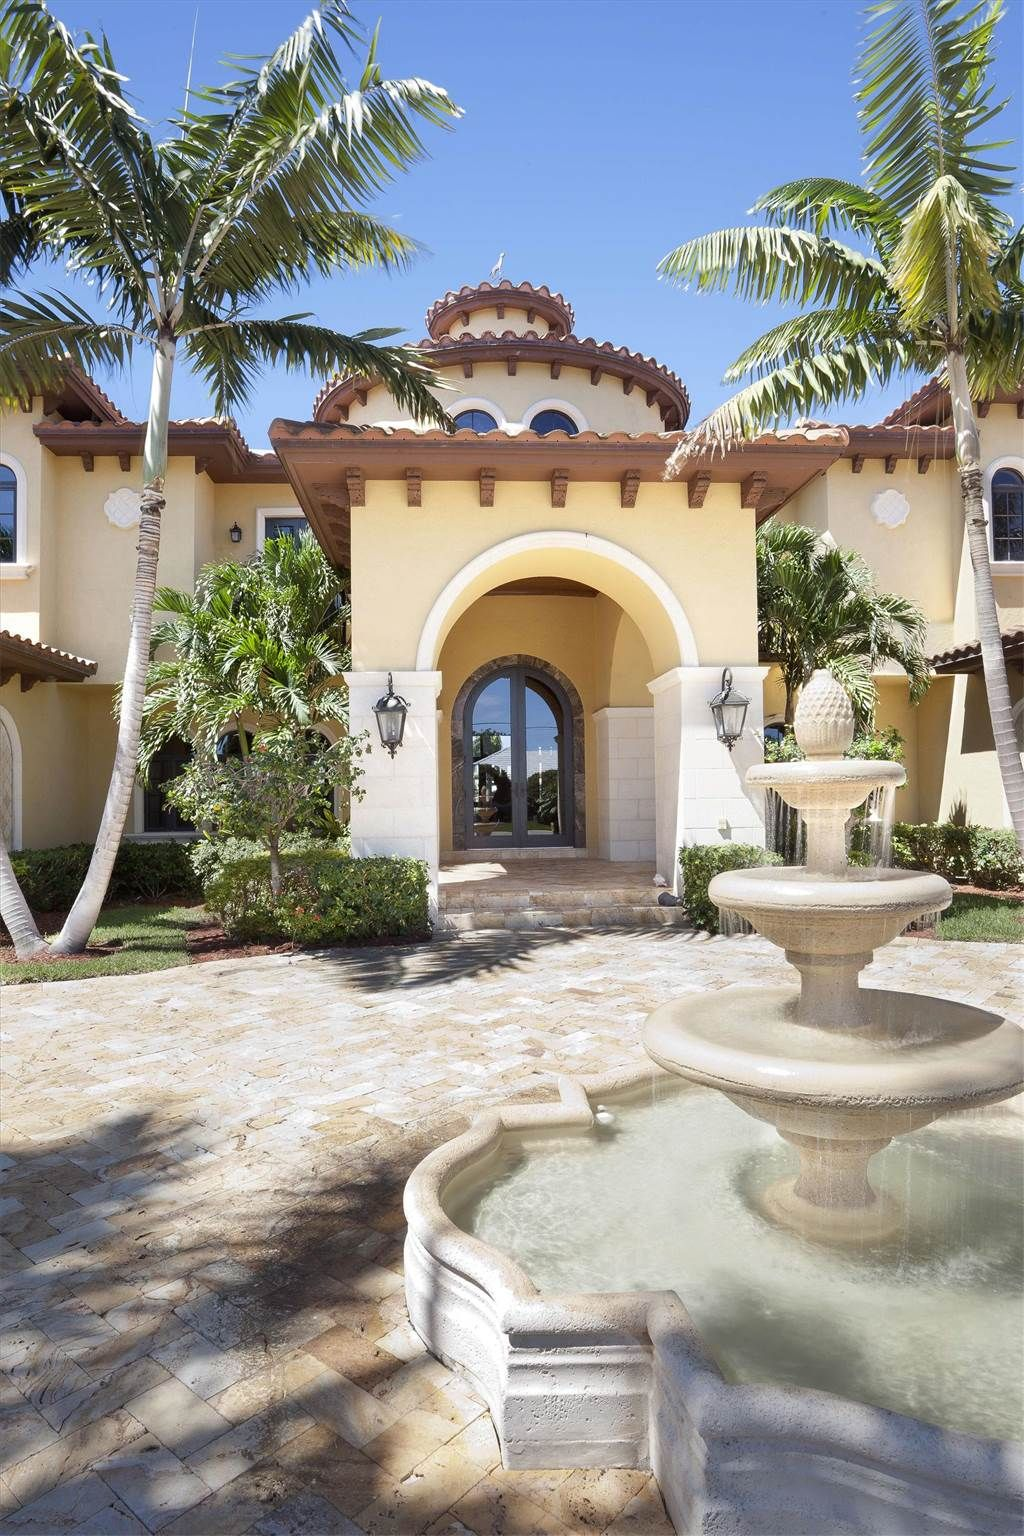 Crib for sale in fort lauderdale fl - Entrance Of Luxury Home In Fort Lauderdale Florida Luxury Homes Most Beautiful Homes